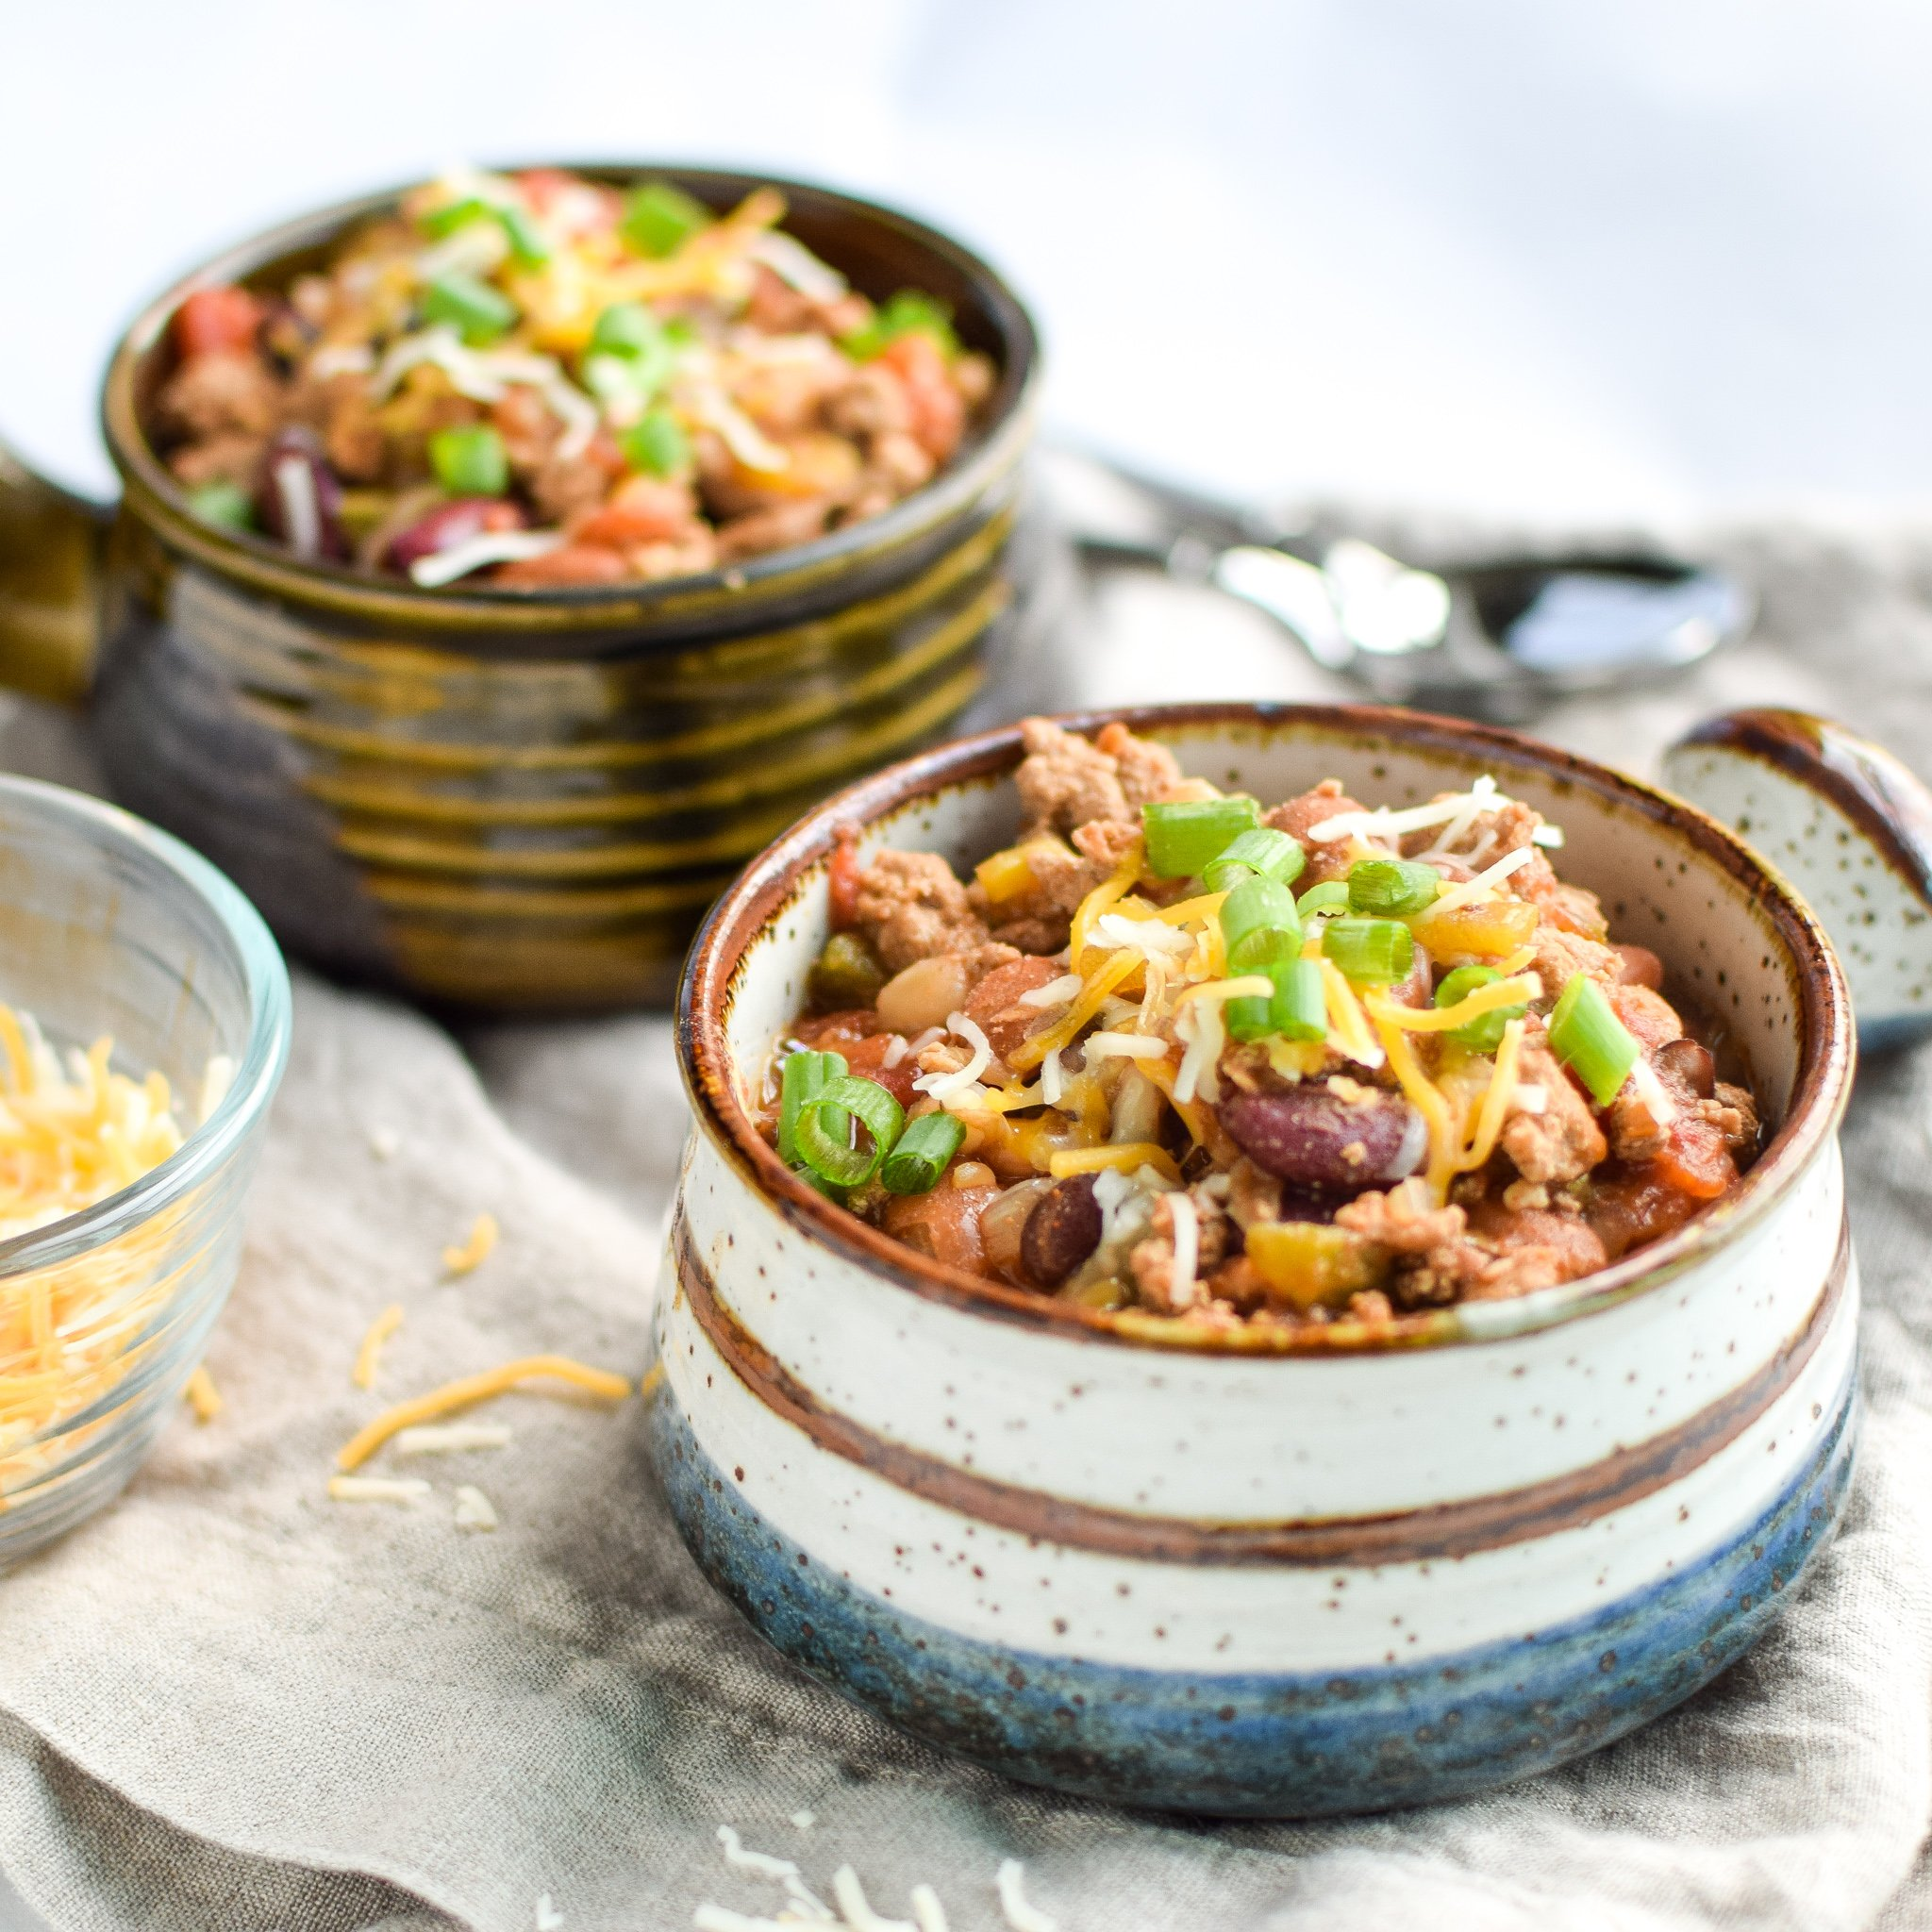 Easy Slow Cooker 4-Bean Turkey Chili recipe - A slow cooker classic that should be in everyone's cookbook! A hearty bean and turkey chili with some smokey kick! - ProjectMealPlan.com